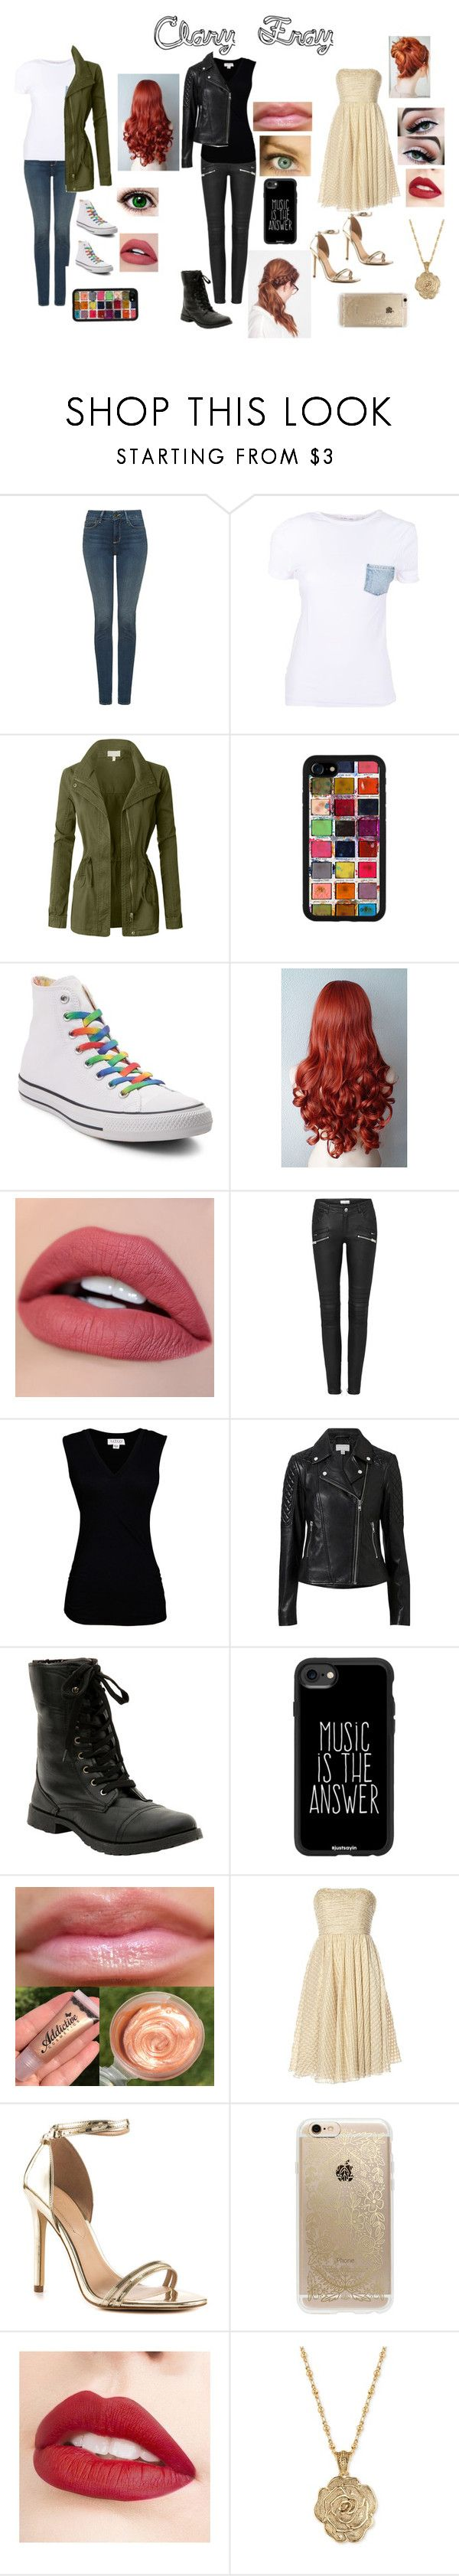 """""""Clary Fray"""" by a-fangirl-mrc on Polyvore featuring NYDJ, Helmut Lang, LE3NO, Converse, Velvet by Graham & Spencer, Witchery, Casetify, Notte by Marchesa, ALDO and Rifle Paper Co"""